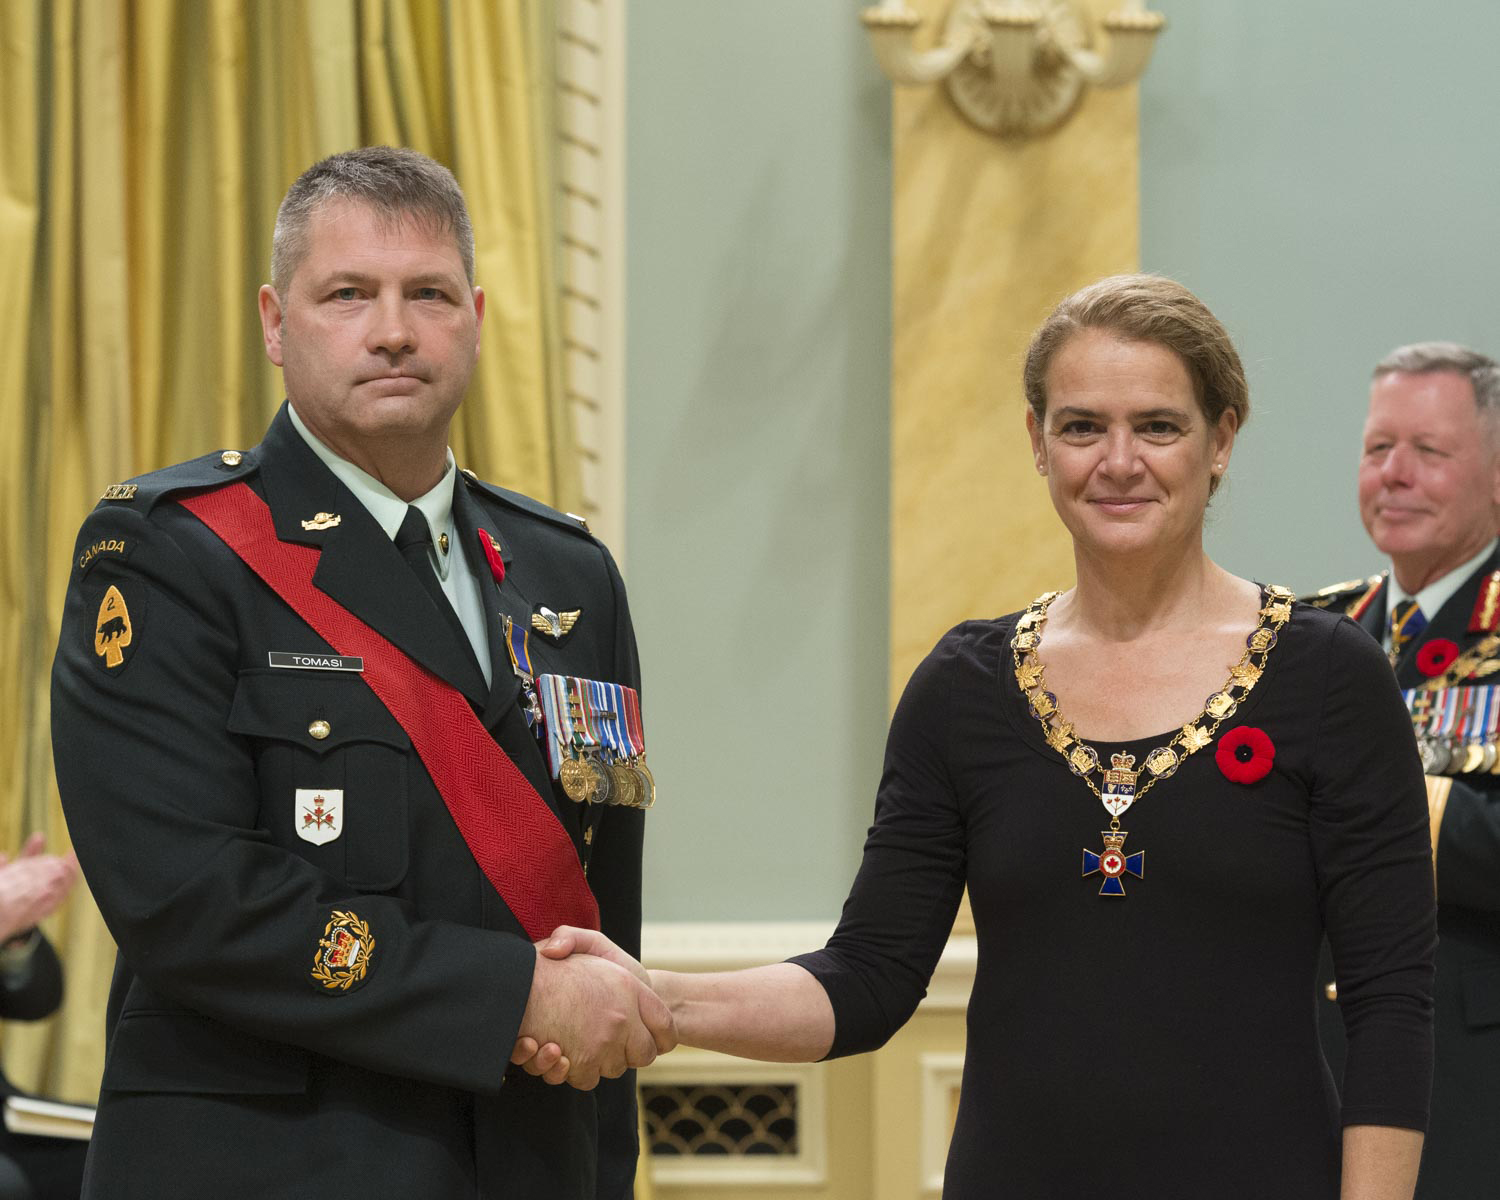 Her Excellency presented the Order of Military Merit at the Member level (M.M.M.) to Warrant Officer Sergio Tomasi, M.M.M., C.D., of the 1st Battalion of the Royal Canadian Regiment, in Petawawa, Ontario.